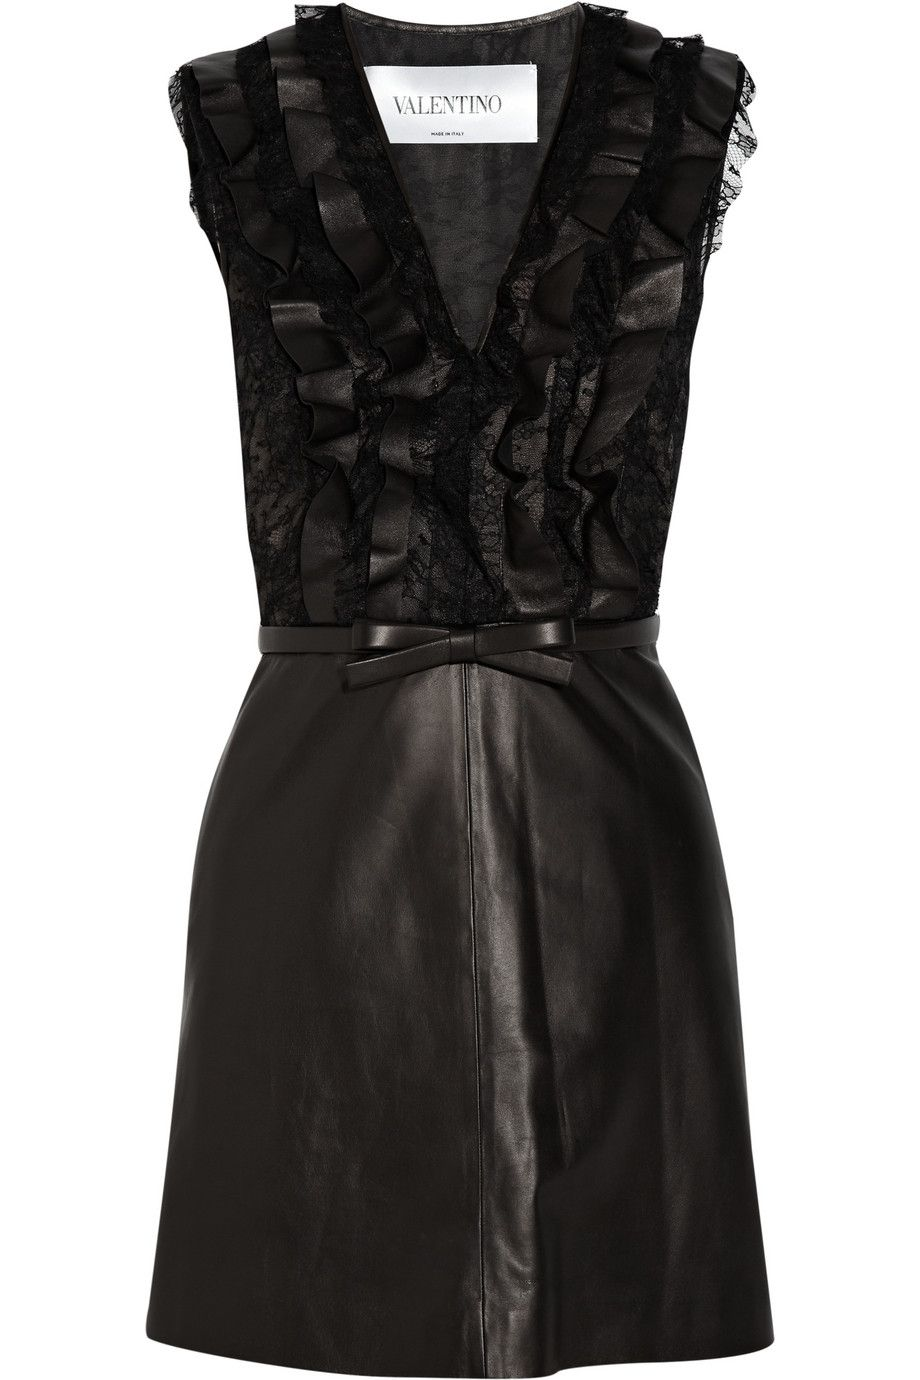 Le Meilleur Belted Leather And Lace Dress Valentino Net A Porter Com Ce Mois Ci